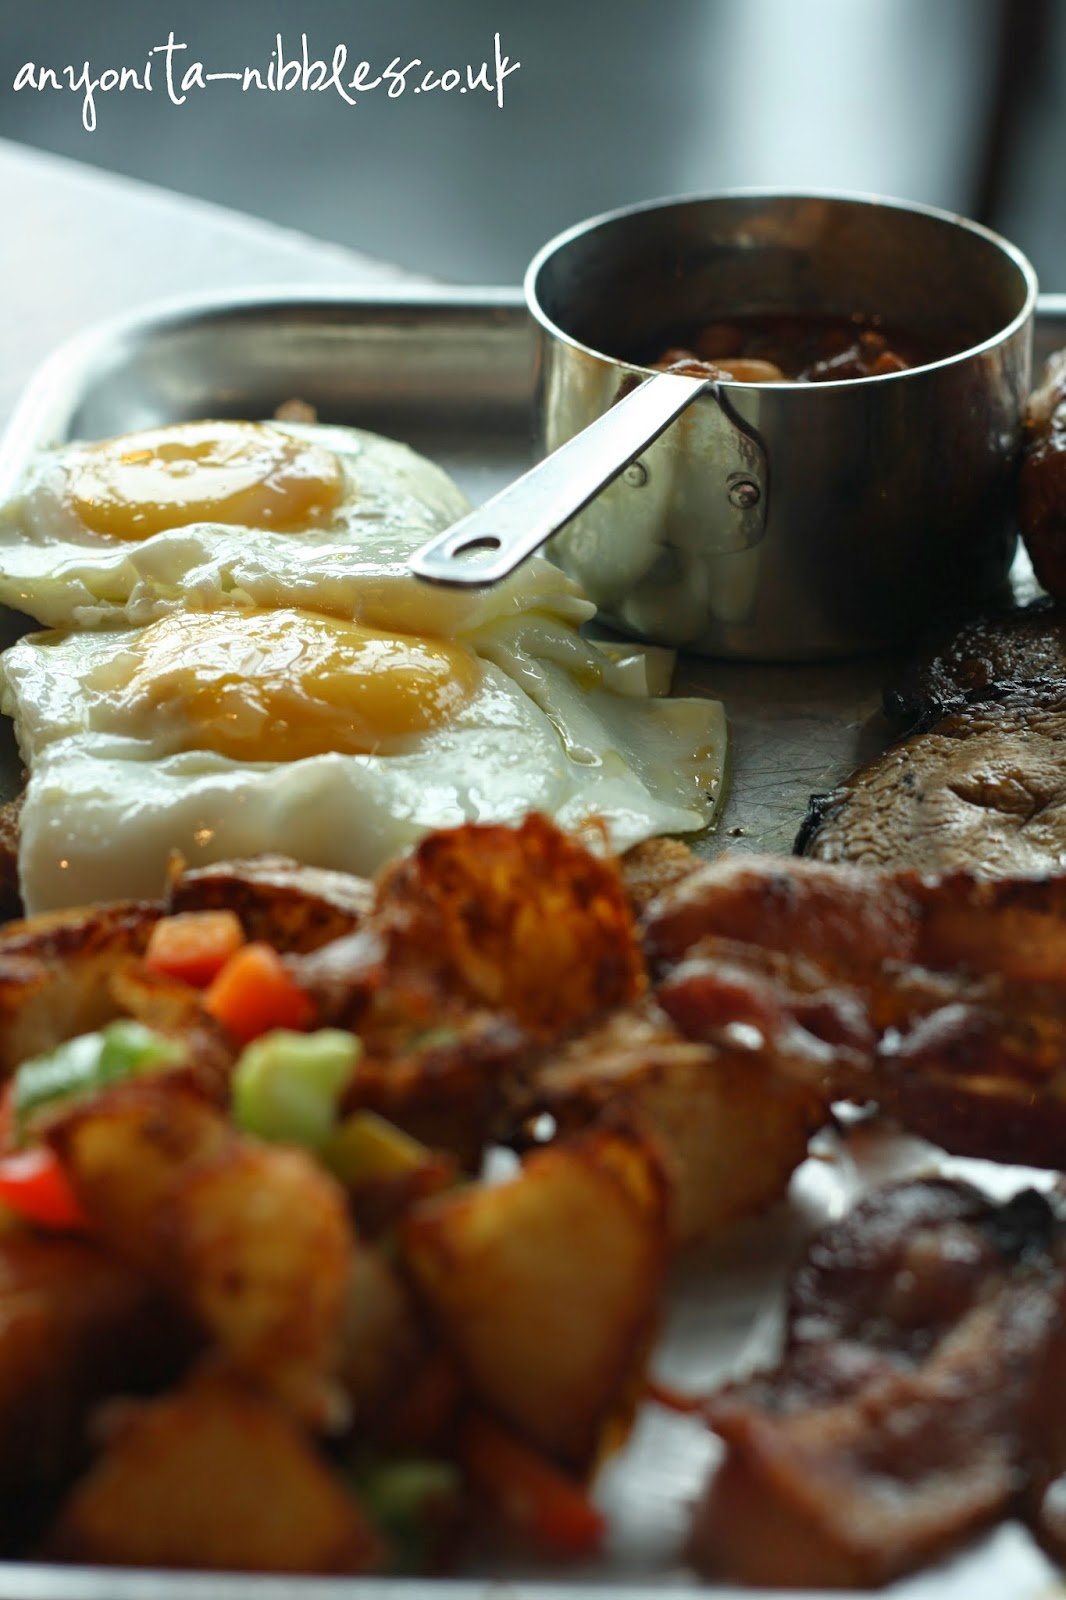 The Jack Daniel's American Breakfast from TGI Friday's | Anyonita-nibbles.co.uk